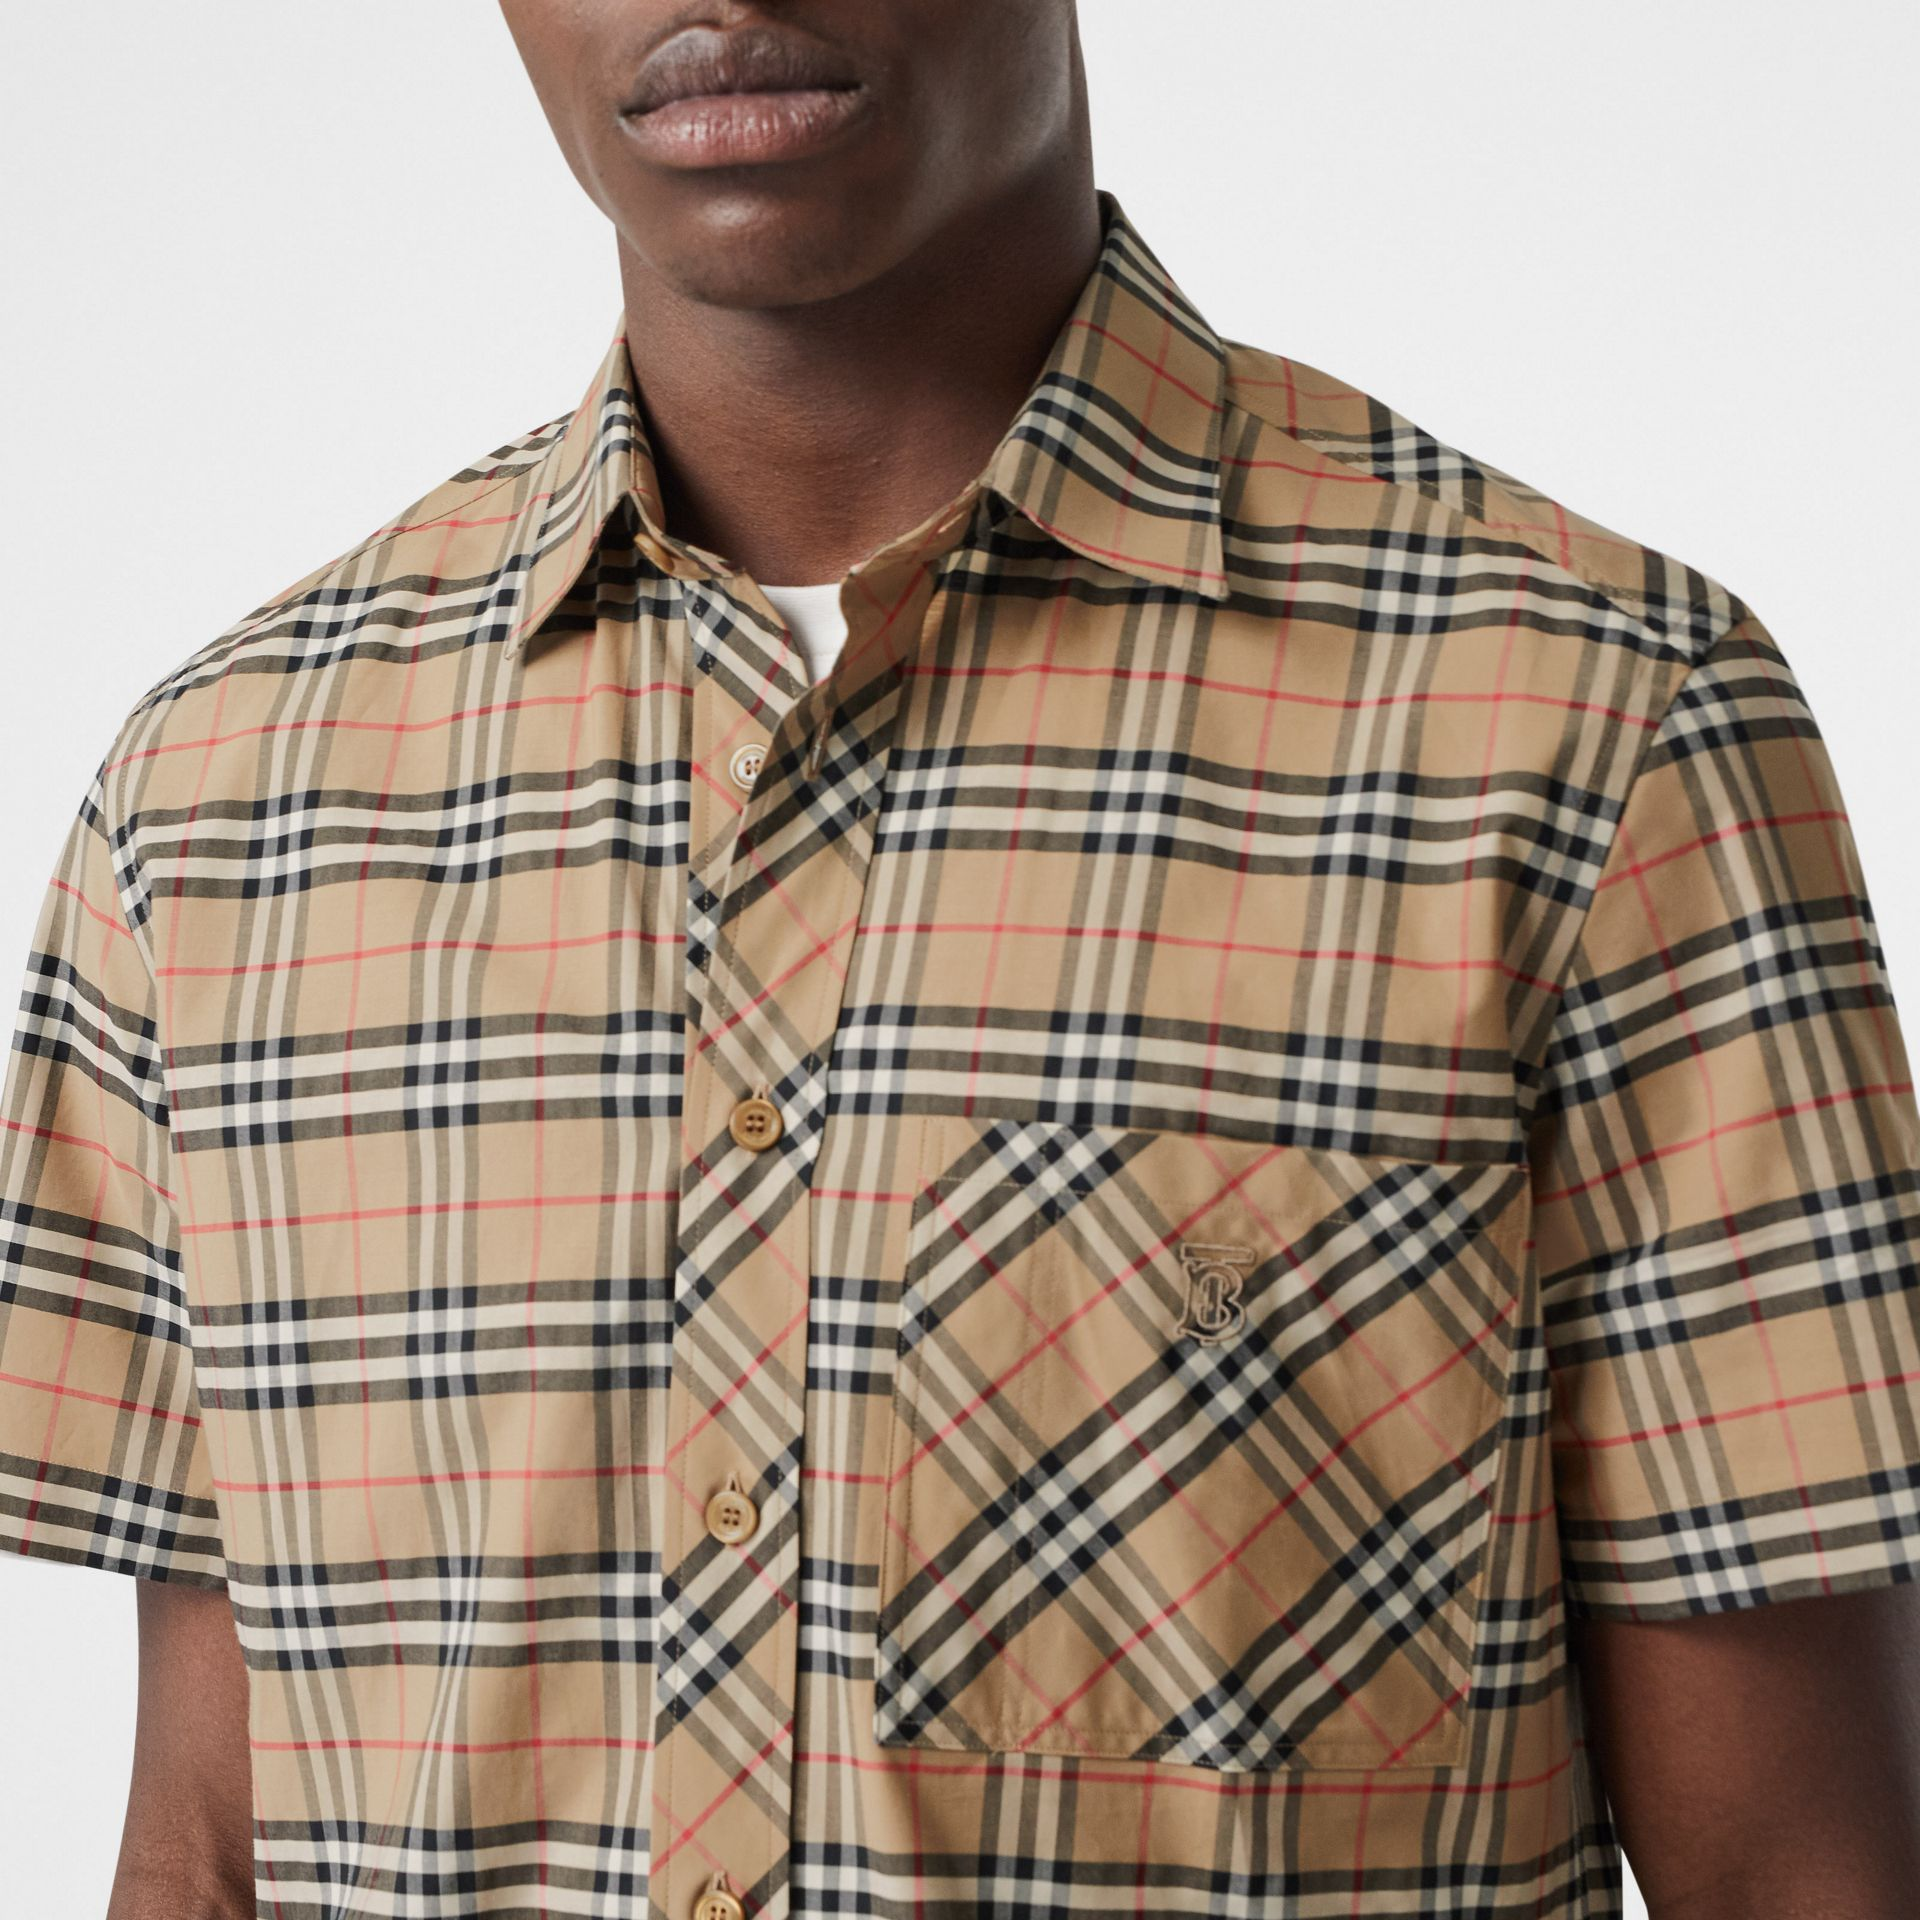 Chemise à manches courtes en coton stretch micro-check (Beige D'archive) - Homme | Burberry - photo de la galerie 1